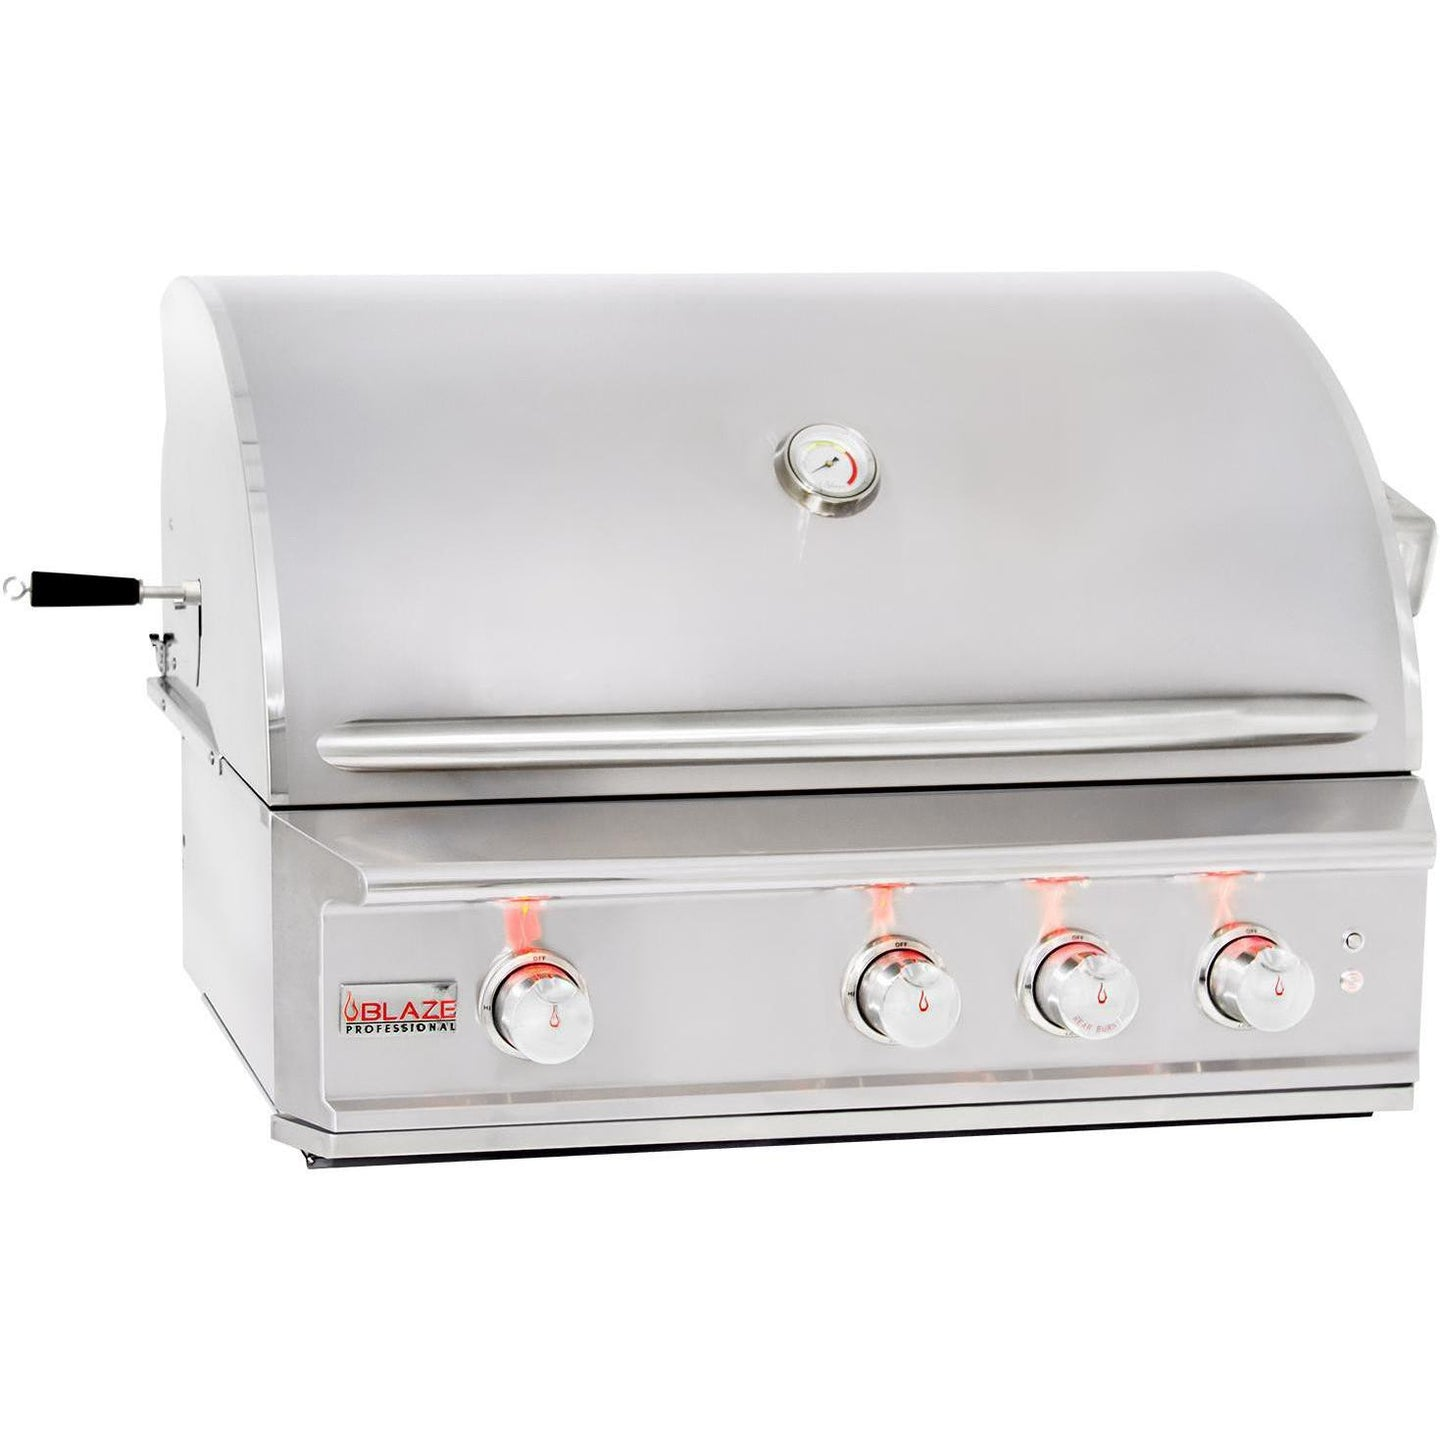 Blaze Professional 34-Inch Built-In Grill With Rear Infrared Burner - BLZ-3PRO-LP/NG